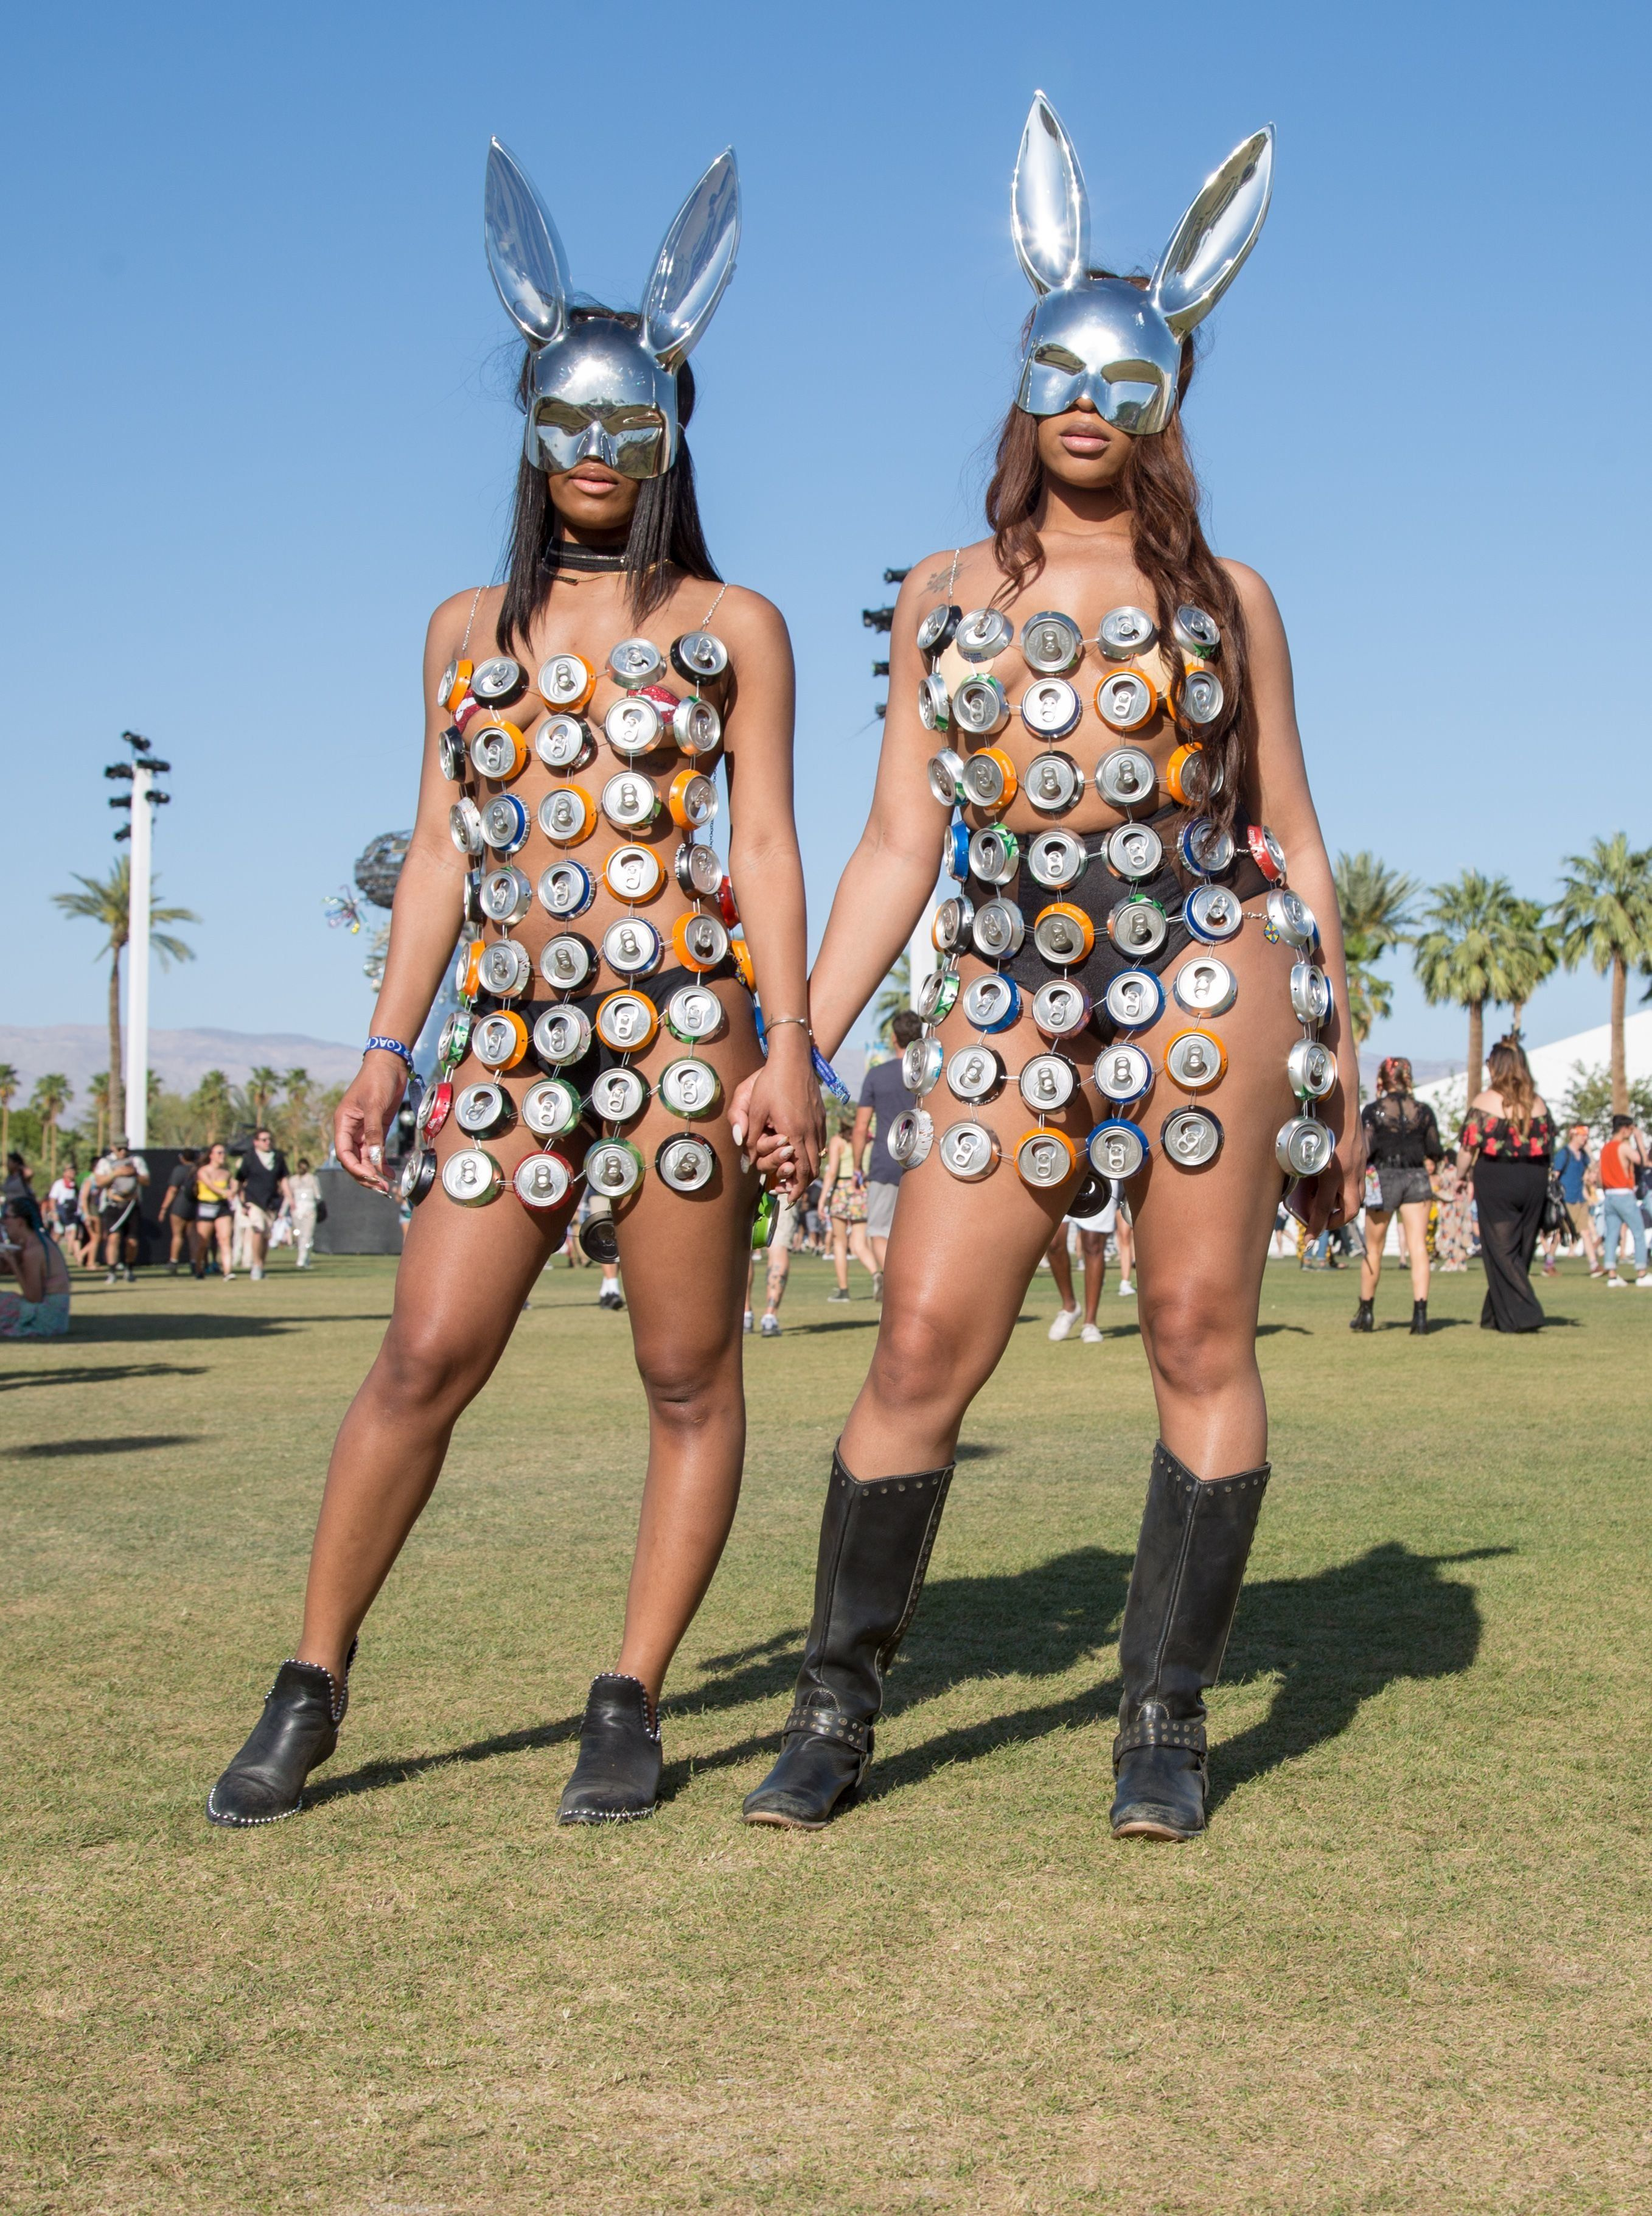 Chanel Twyman (L), 23, and Auzuanay Watkins, 25, both of Philadelphia, Pennsylvania pose at the Coachella Music and Arts Festival in Indio, California, April 14, 2018. Coachella became one of the world's premier music festivals not only for the A-list performers. The two-weekend party in the California desert has become a major event in its own right for the fashion. While designers have heavily marketed their brands to Coachella, the fans who draw the most notice often do so by embracing their own sartorial flair, driven by a sense of innovation and, among revelers in the searing heat, of inhibition.  / AFP PHOTO / Kyle Grillot / TO GO WITH AFP STORY by Shaun TANDON, 'From flowers to bondage, a fashion bonanza at Coachella'        (Photo credit should read KYLE GRILLOT/AFP/Getty Images)